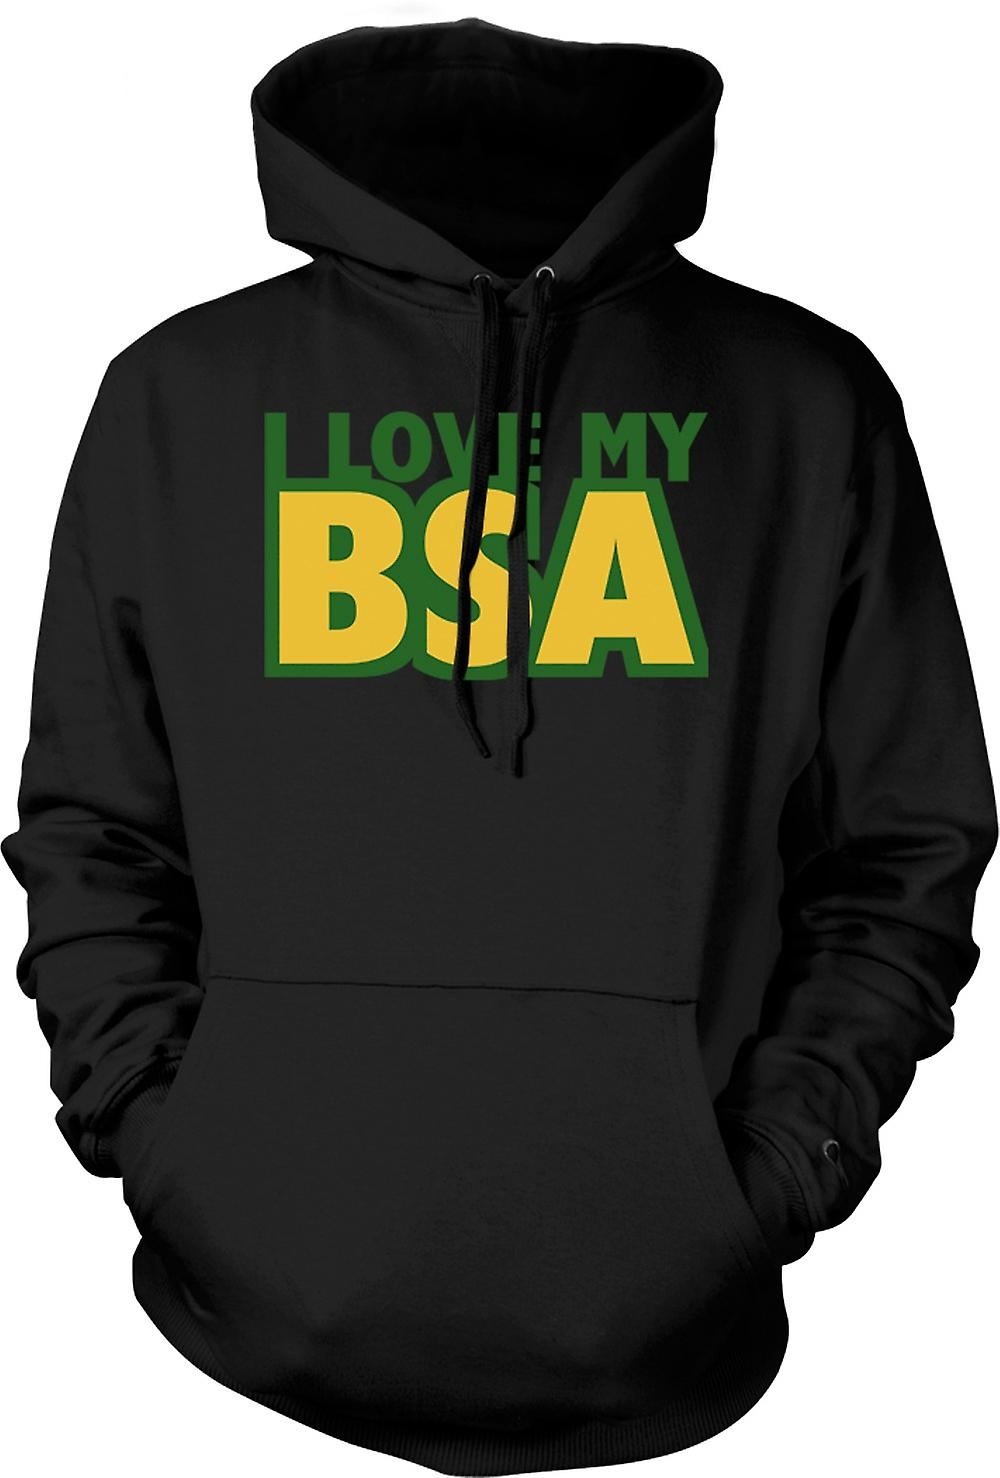 Mens Hoodie -  I Love My Bsa - Motorcycle - Biker